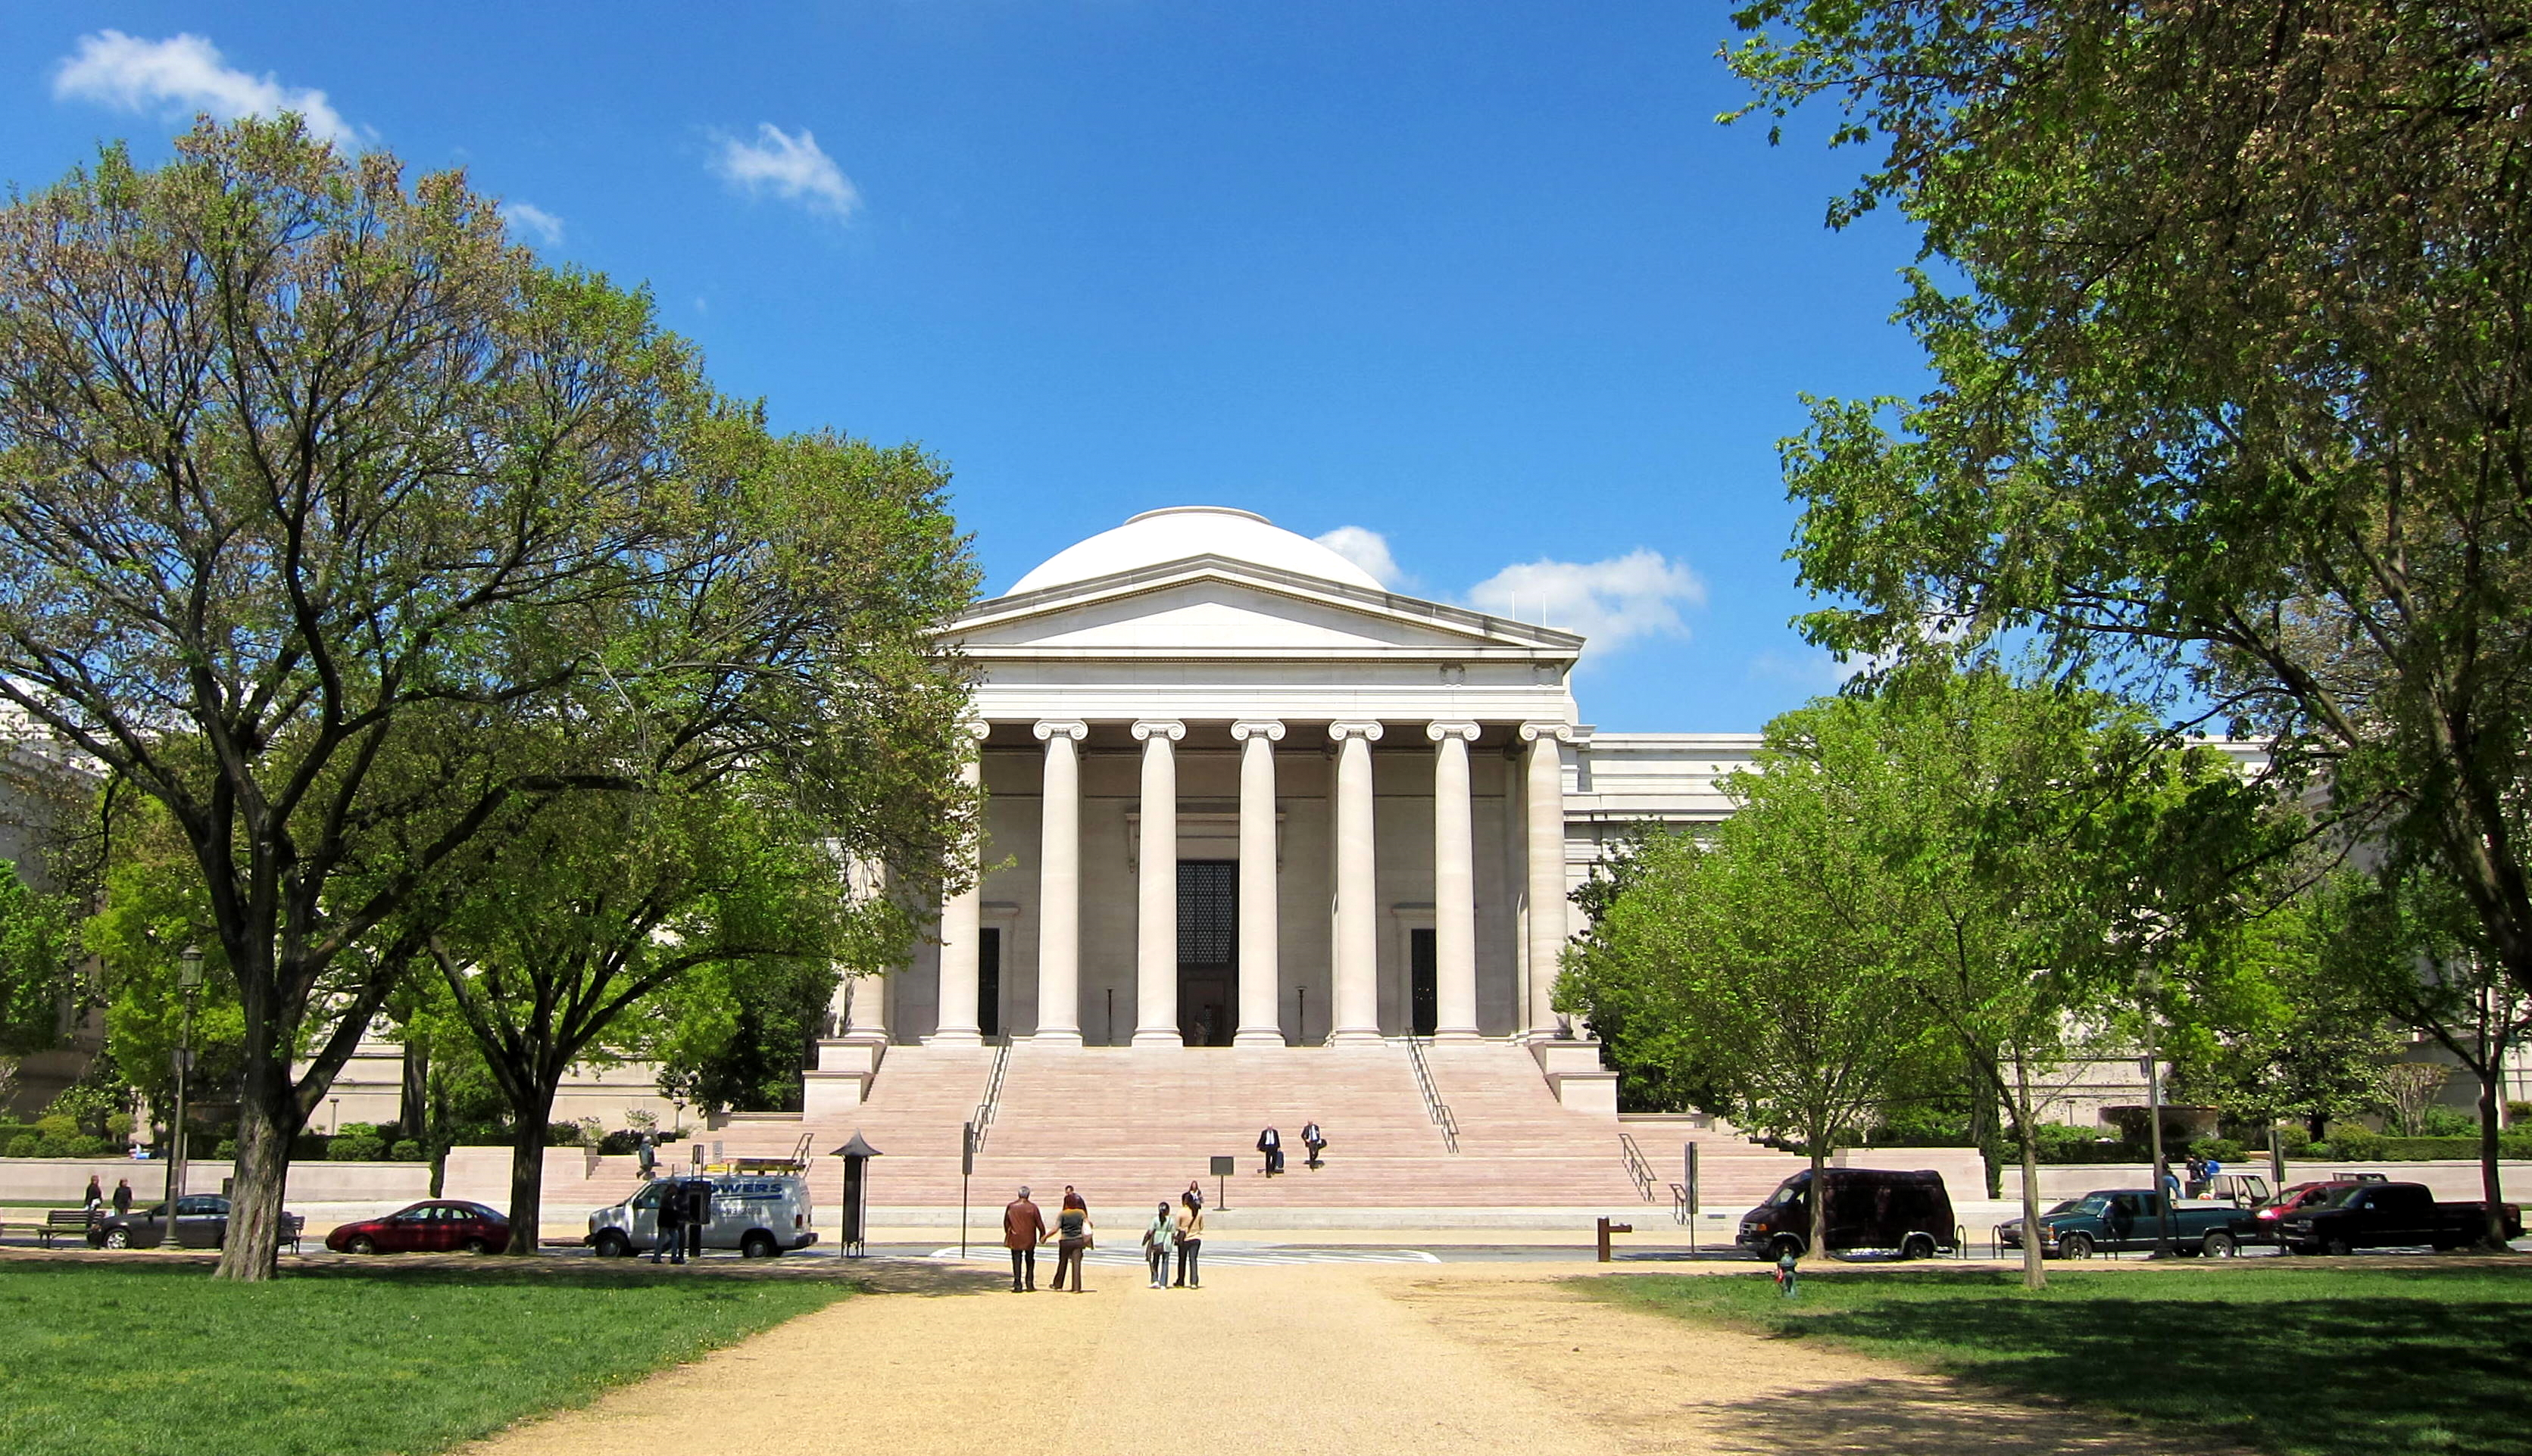 The south facade, seen from the mall's walking path, of the West Building of the National Gallery of Art